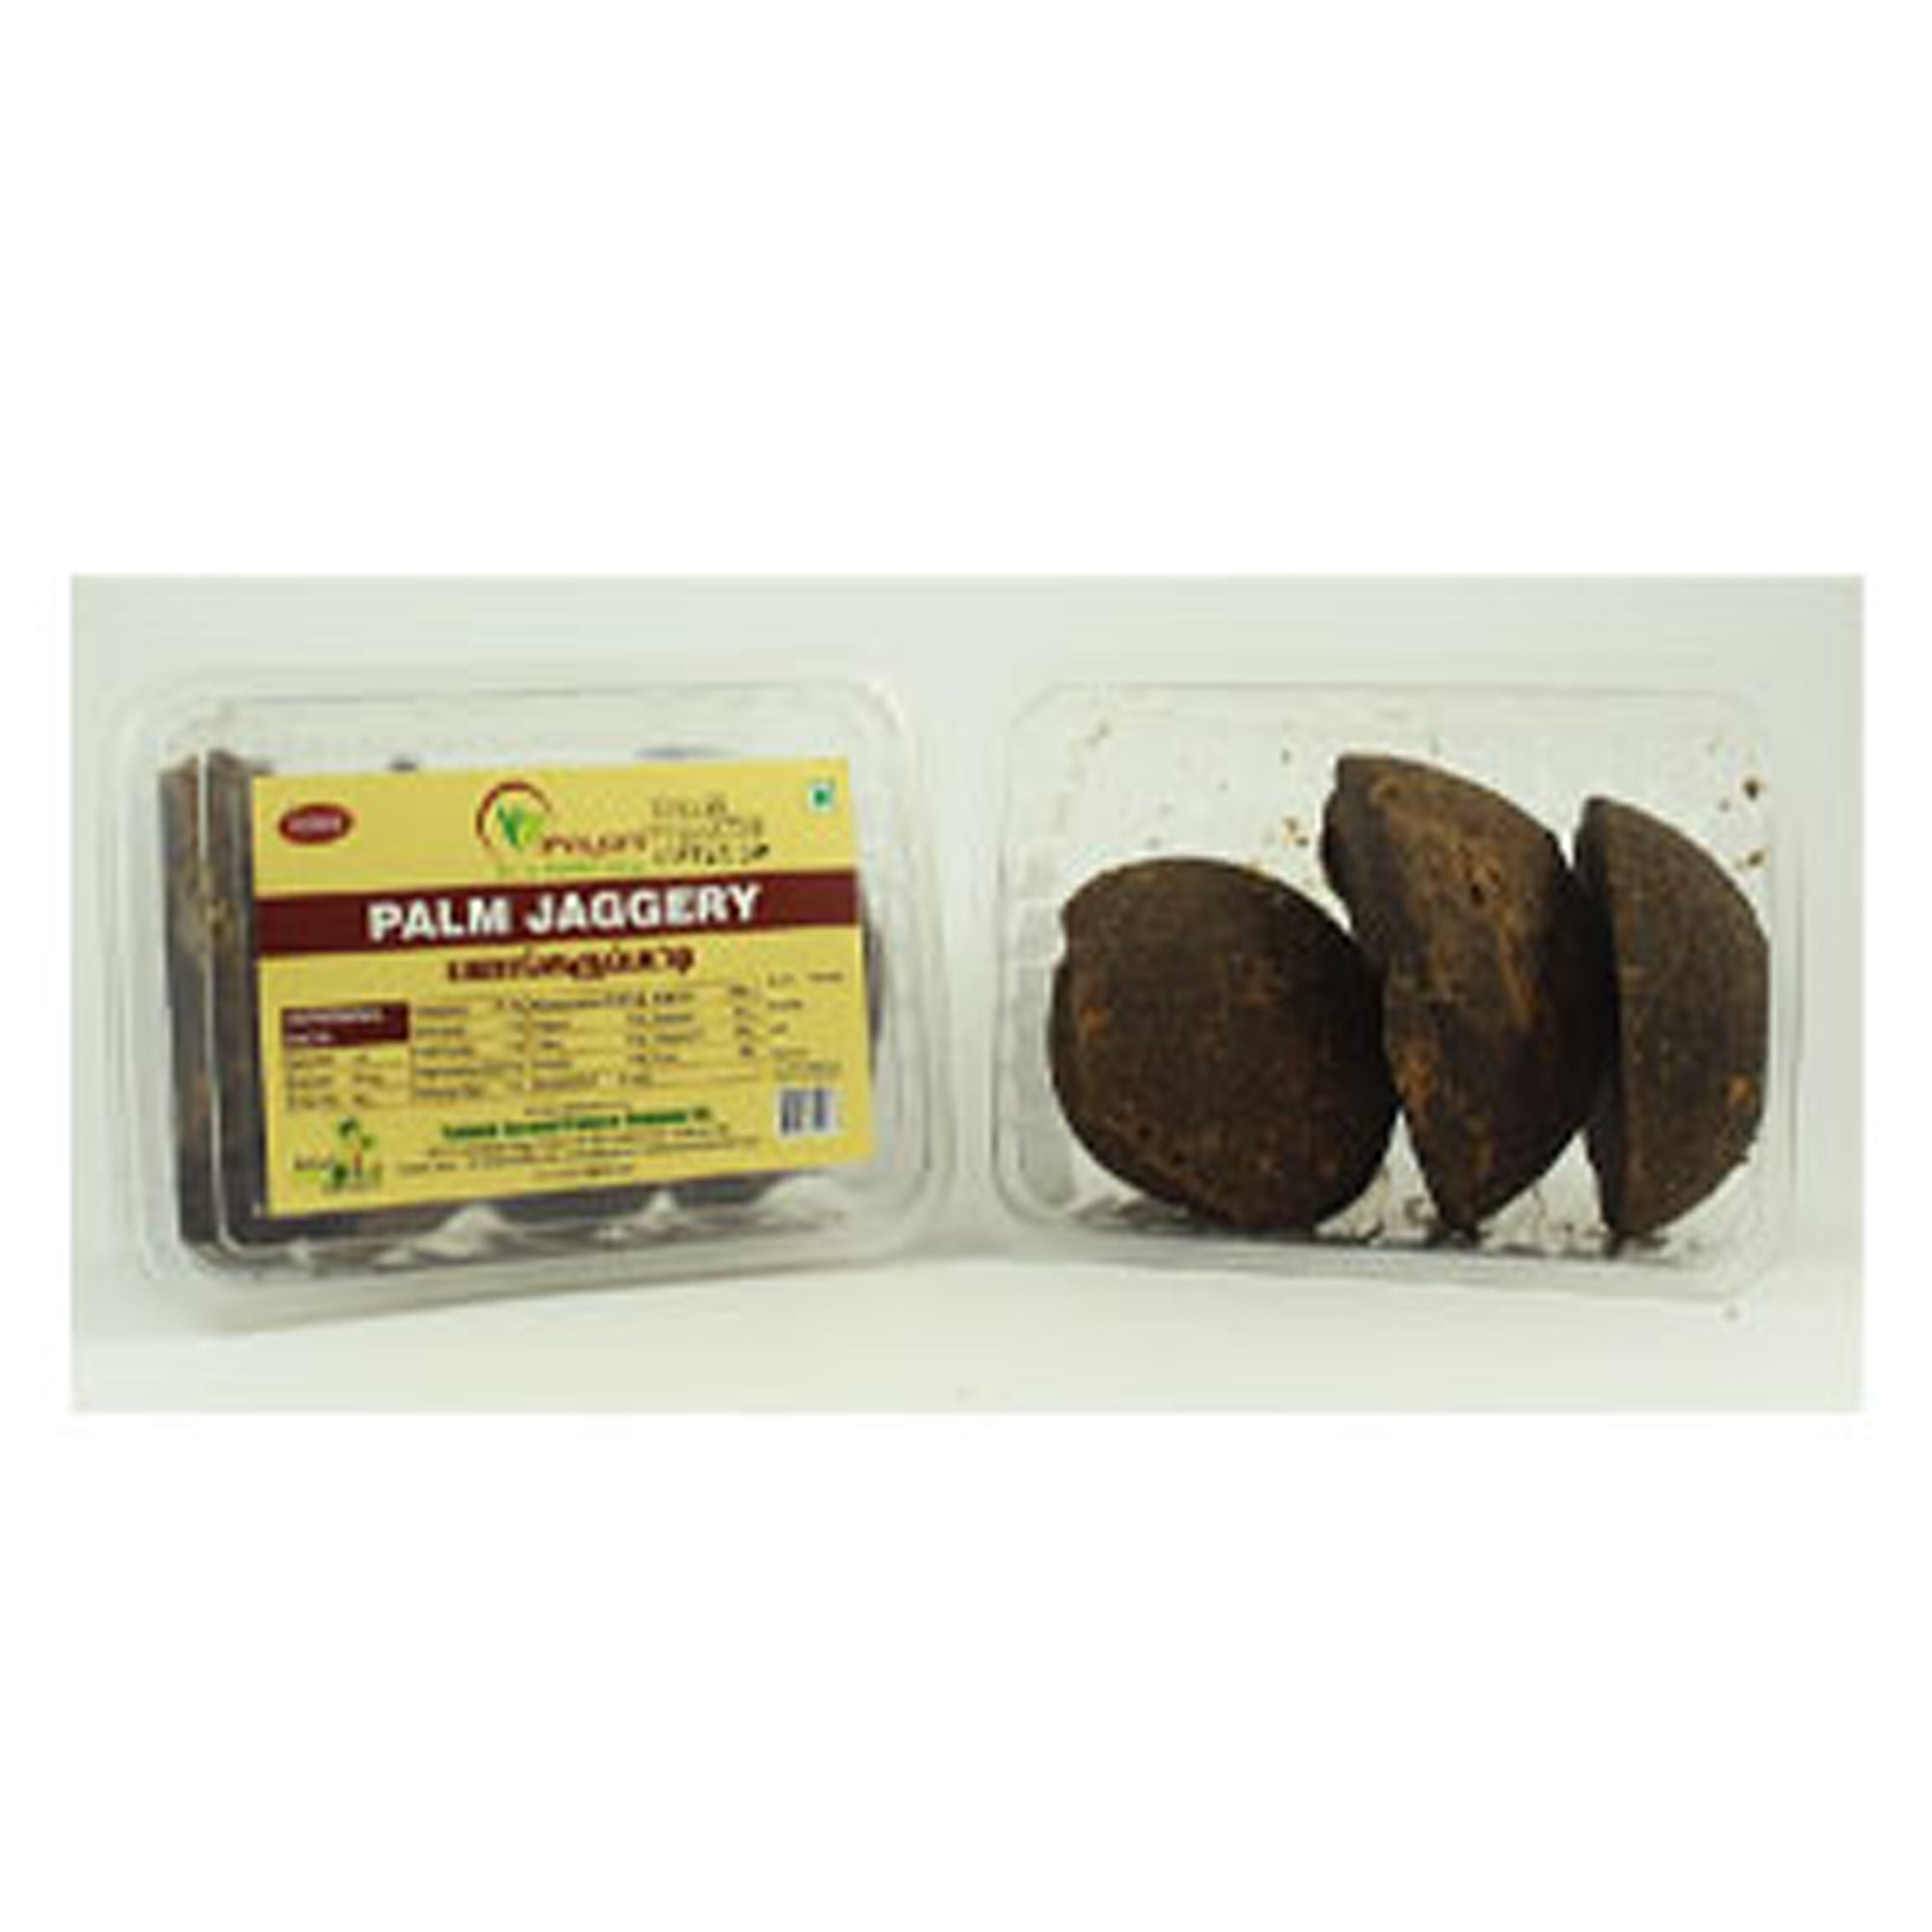 IMAYAM PALM JAGGERY 300GM MRP RS130